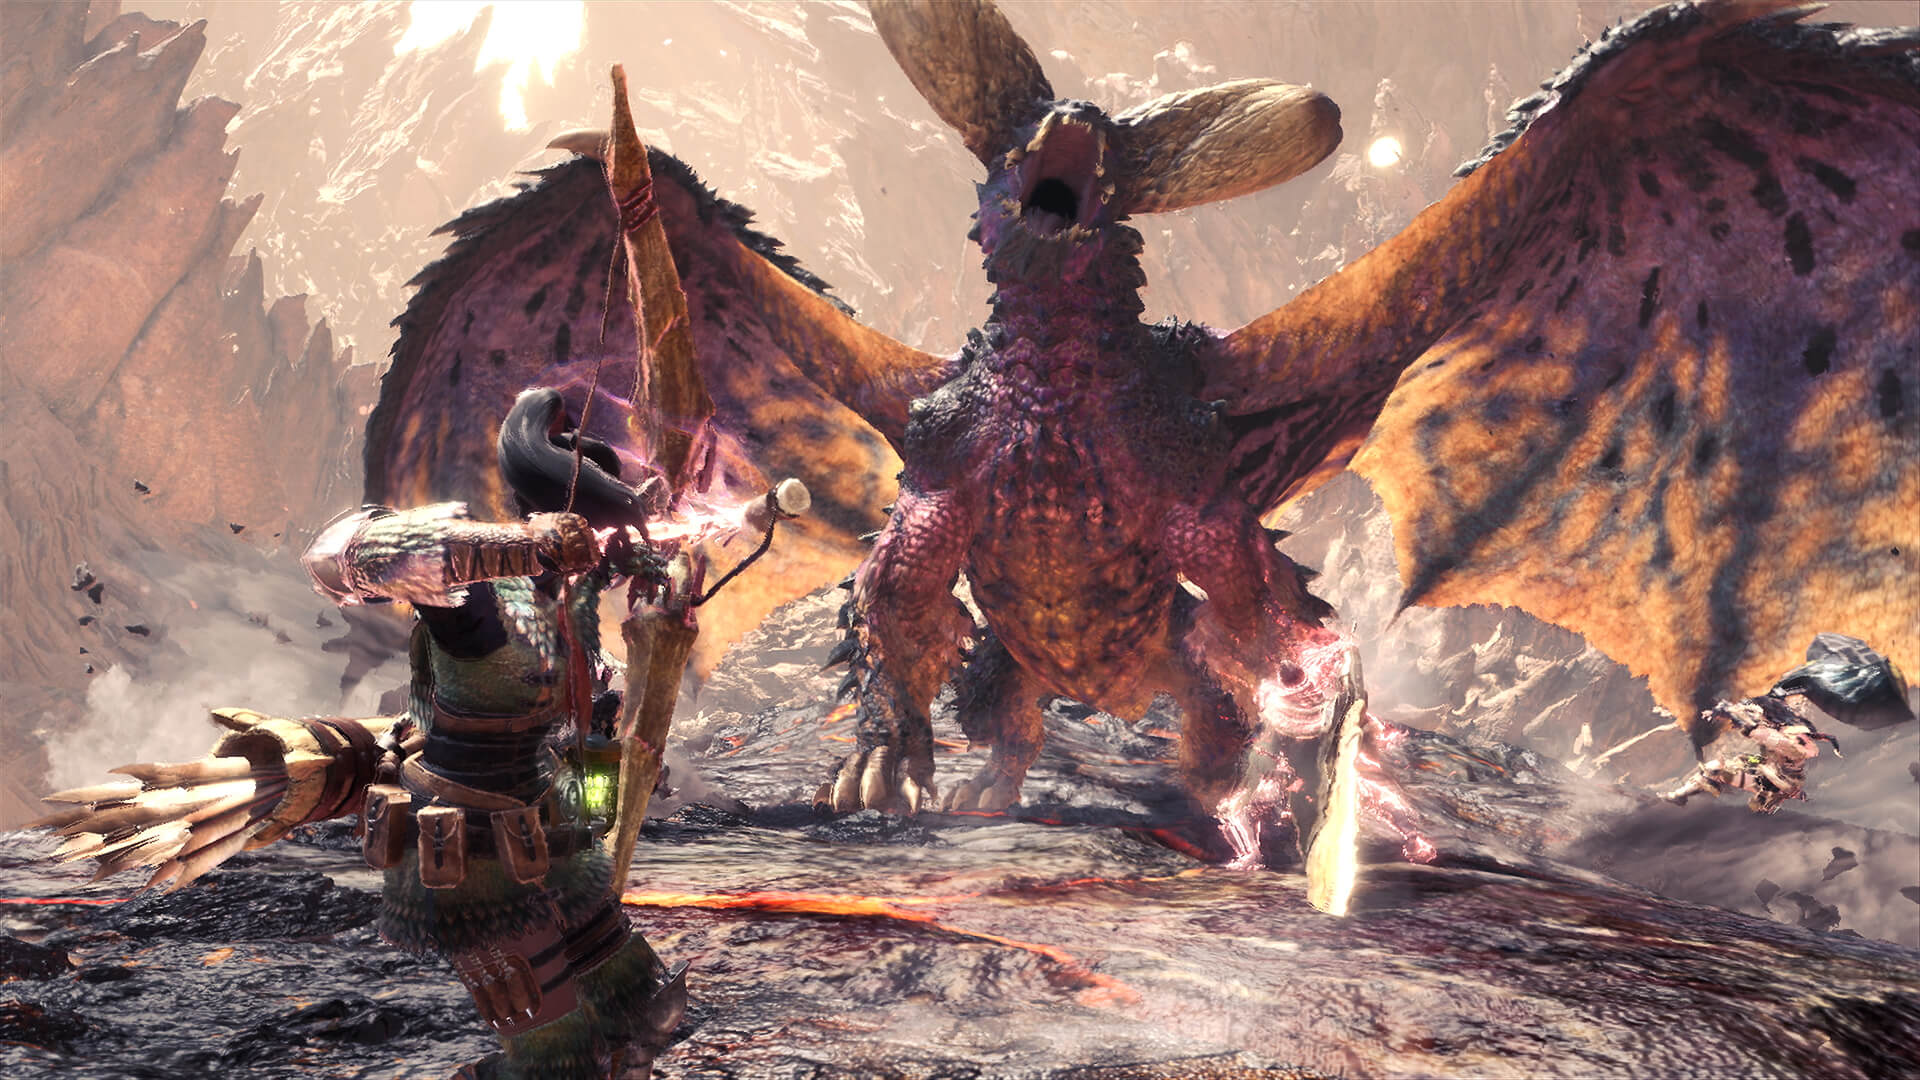 Monster Hunter World Review 2019 – Overview, Storyline, Pros